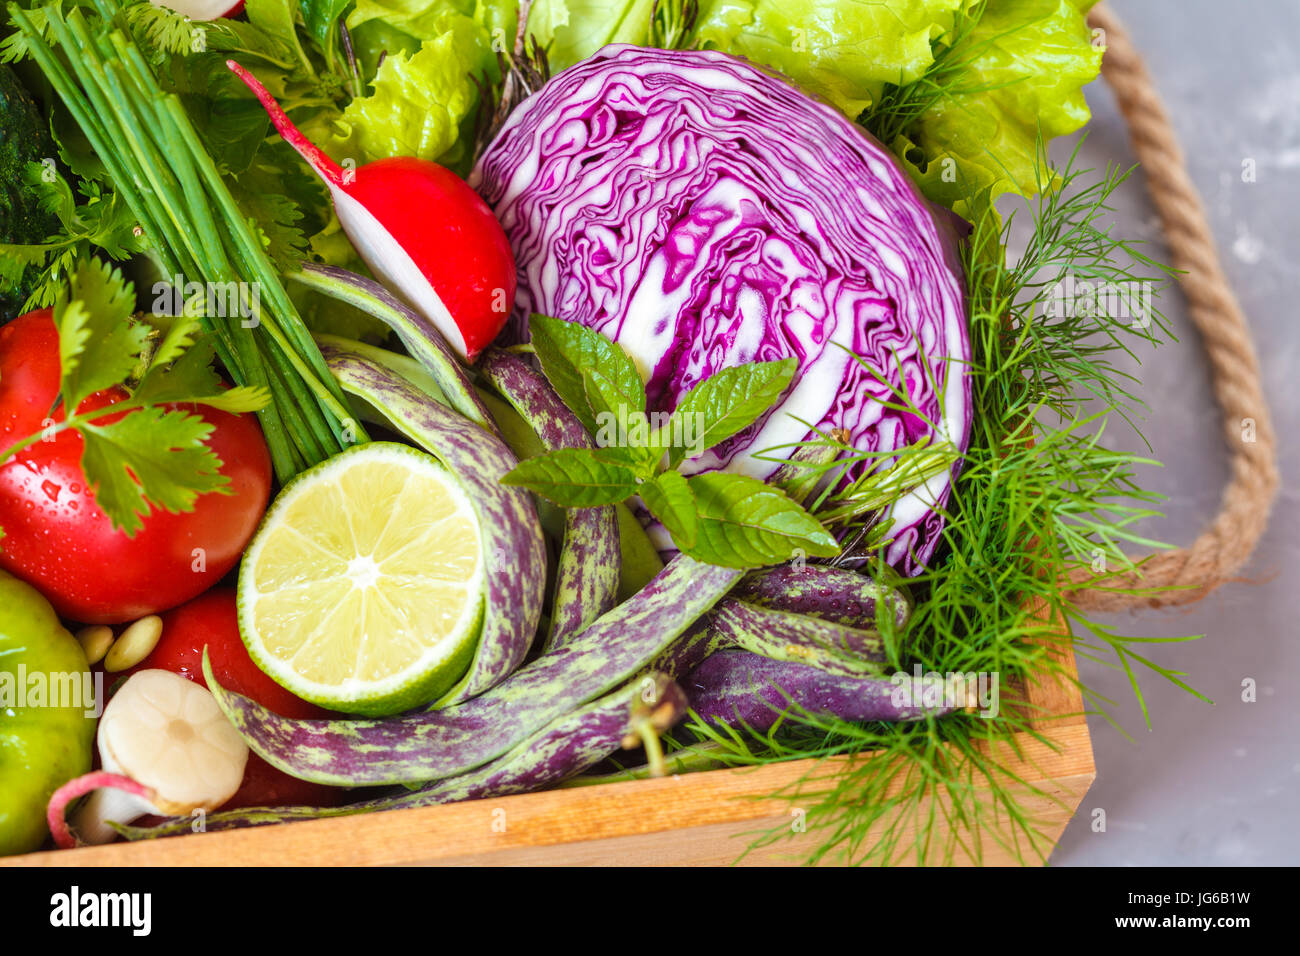 Summer vegetables in a wooden box. Love for a healthy vegan food concept. - Stock Image